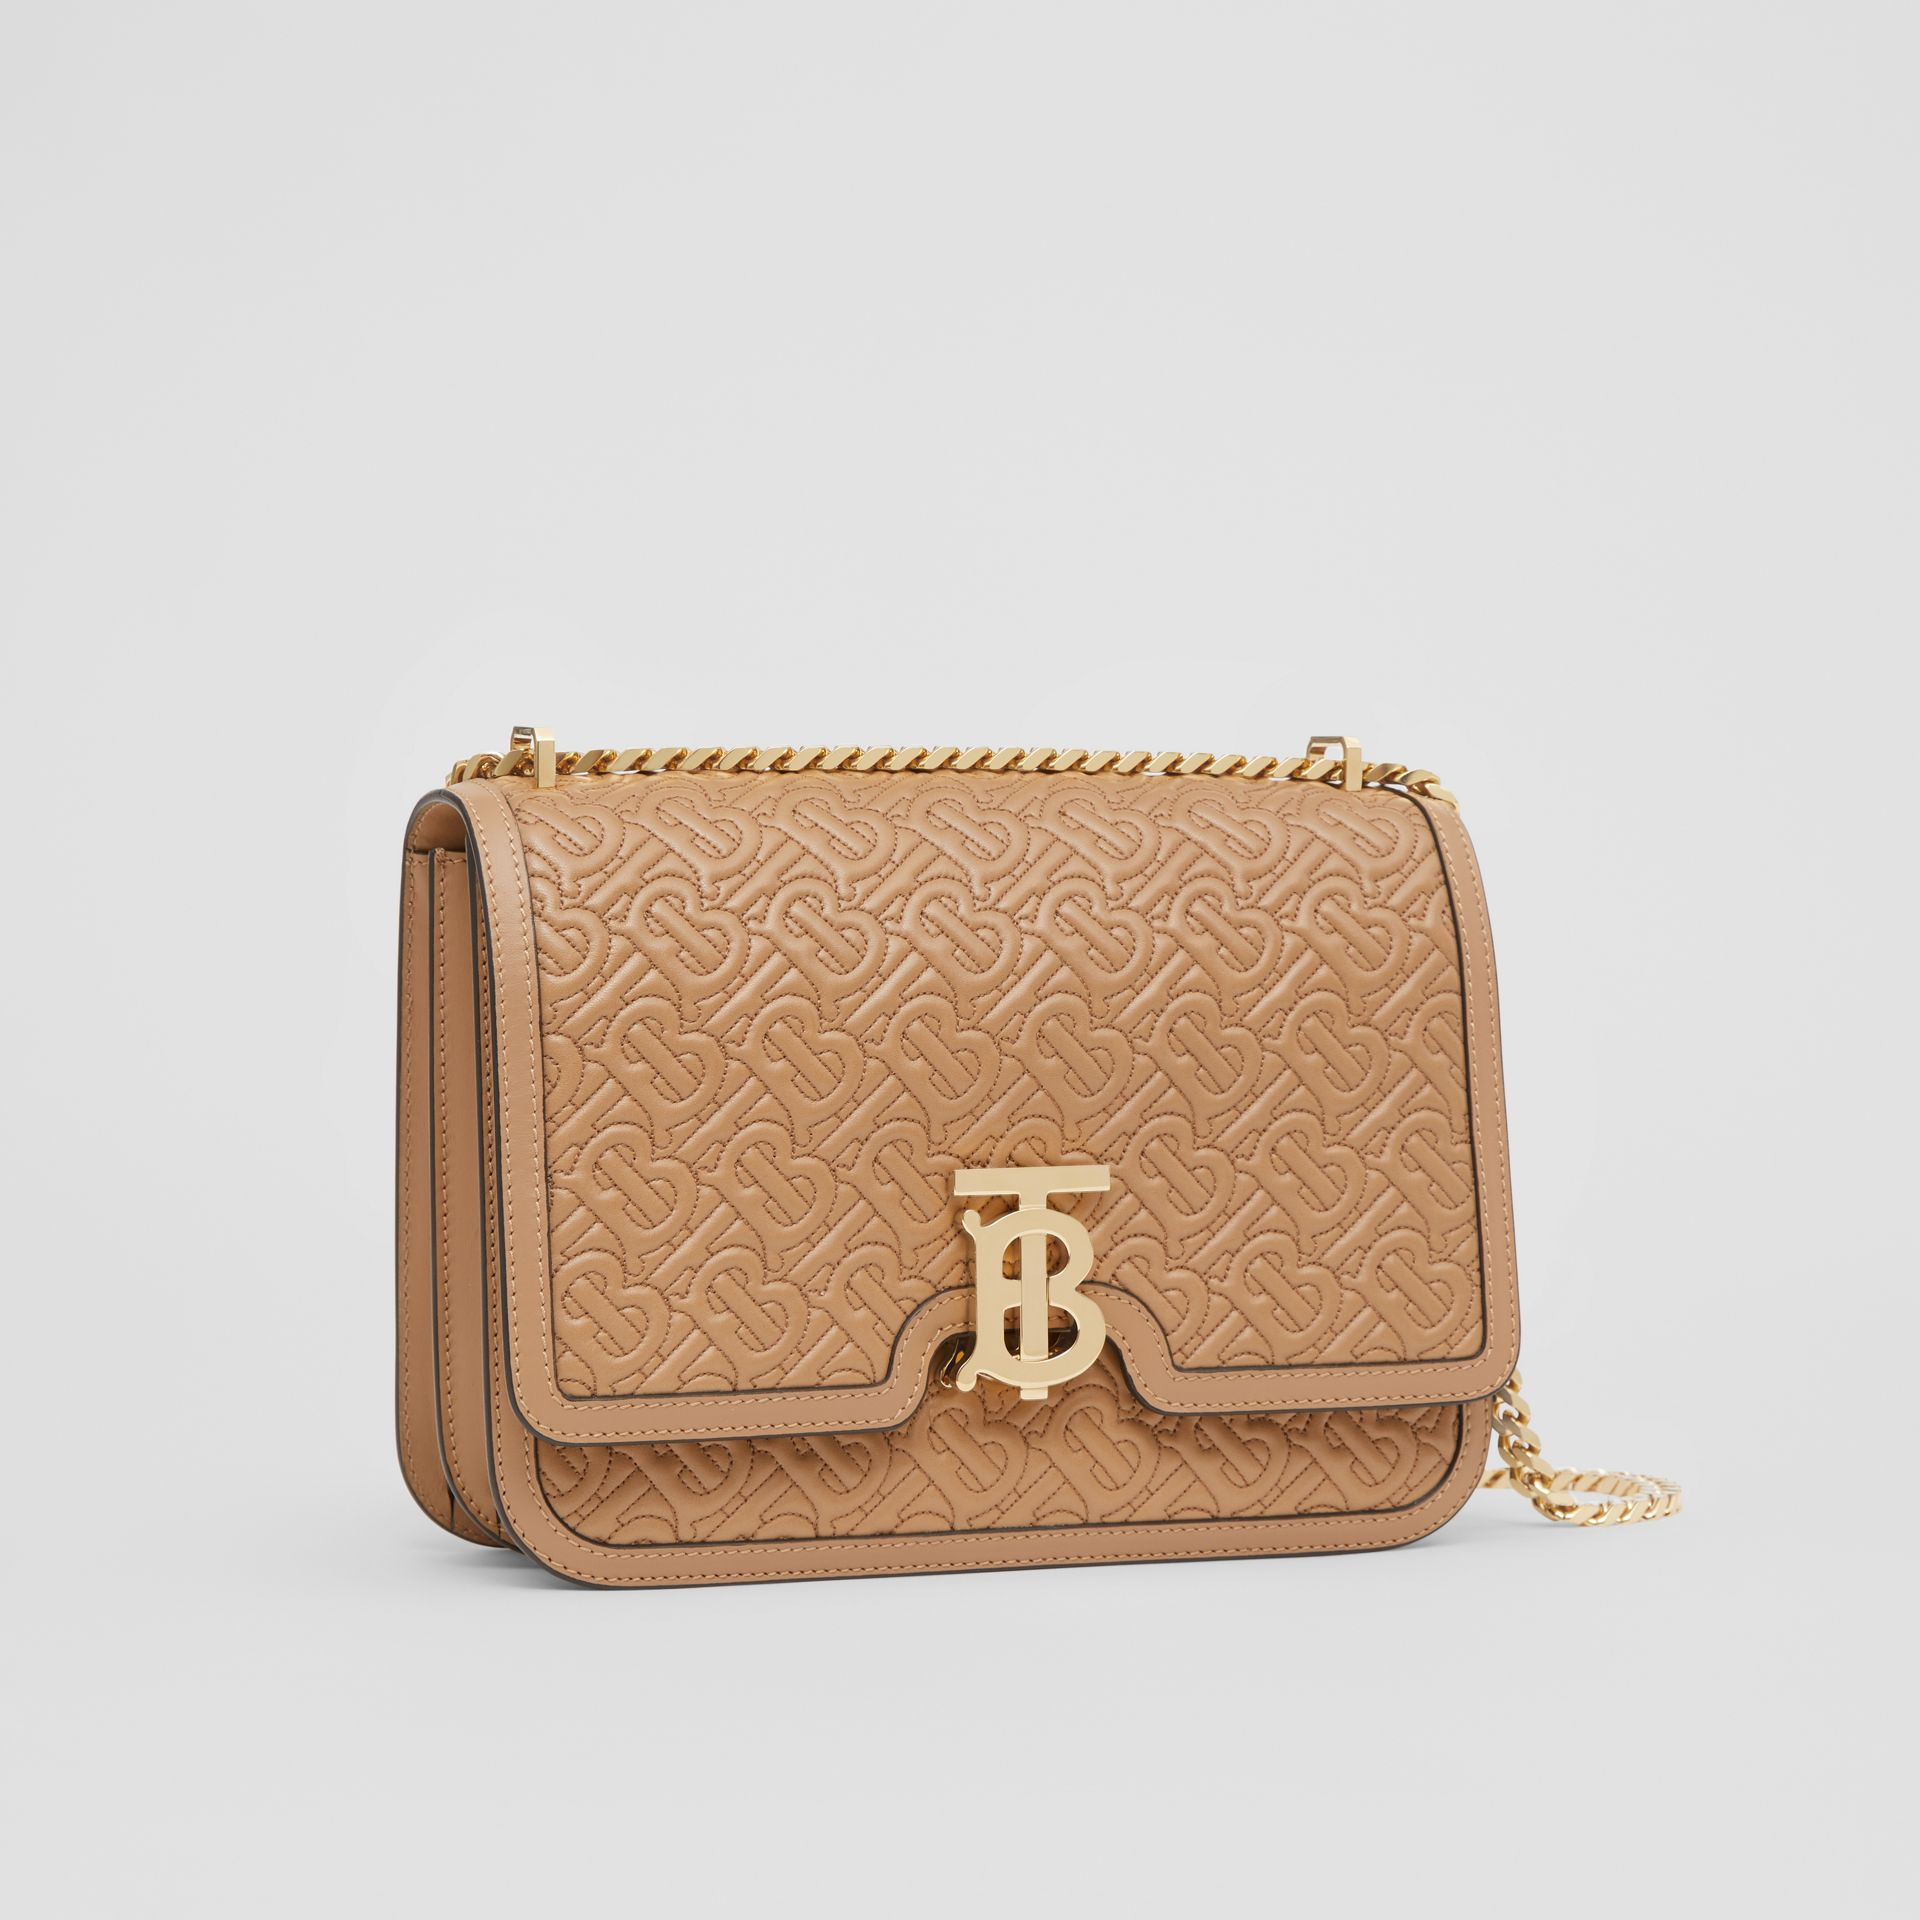 Medium Quilted Monogram Lambskin TB Bag in Honey - Women | Burberry - gallery image 6